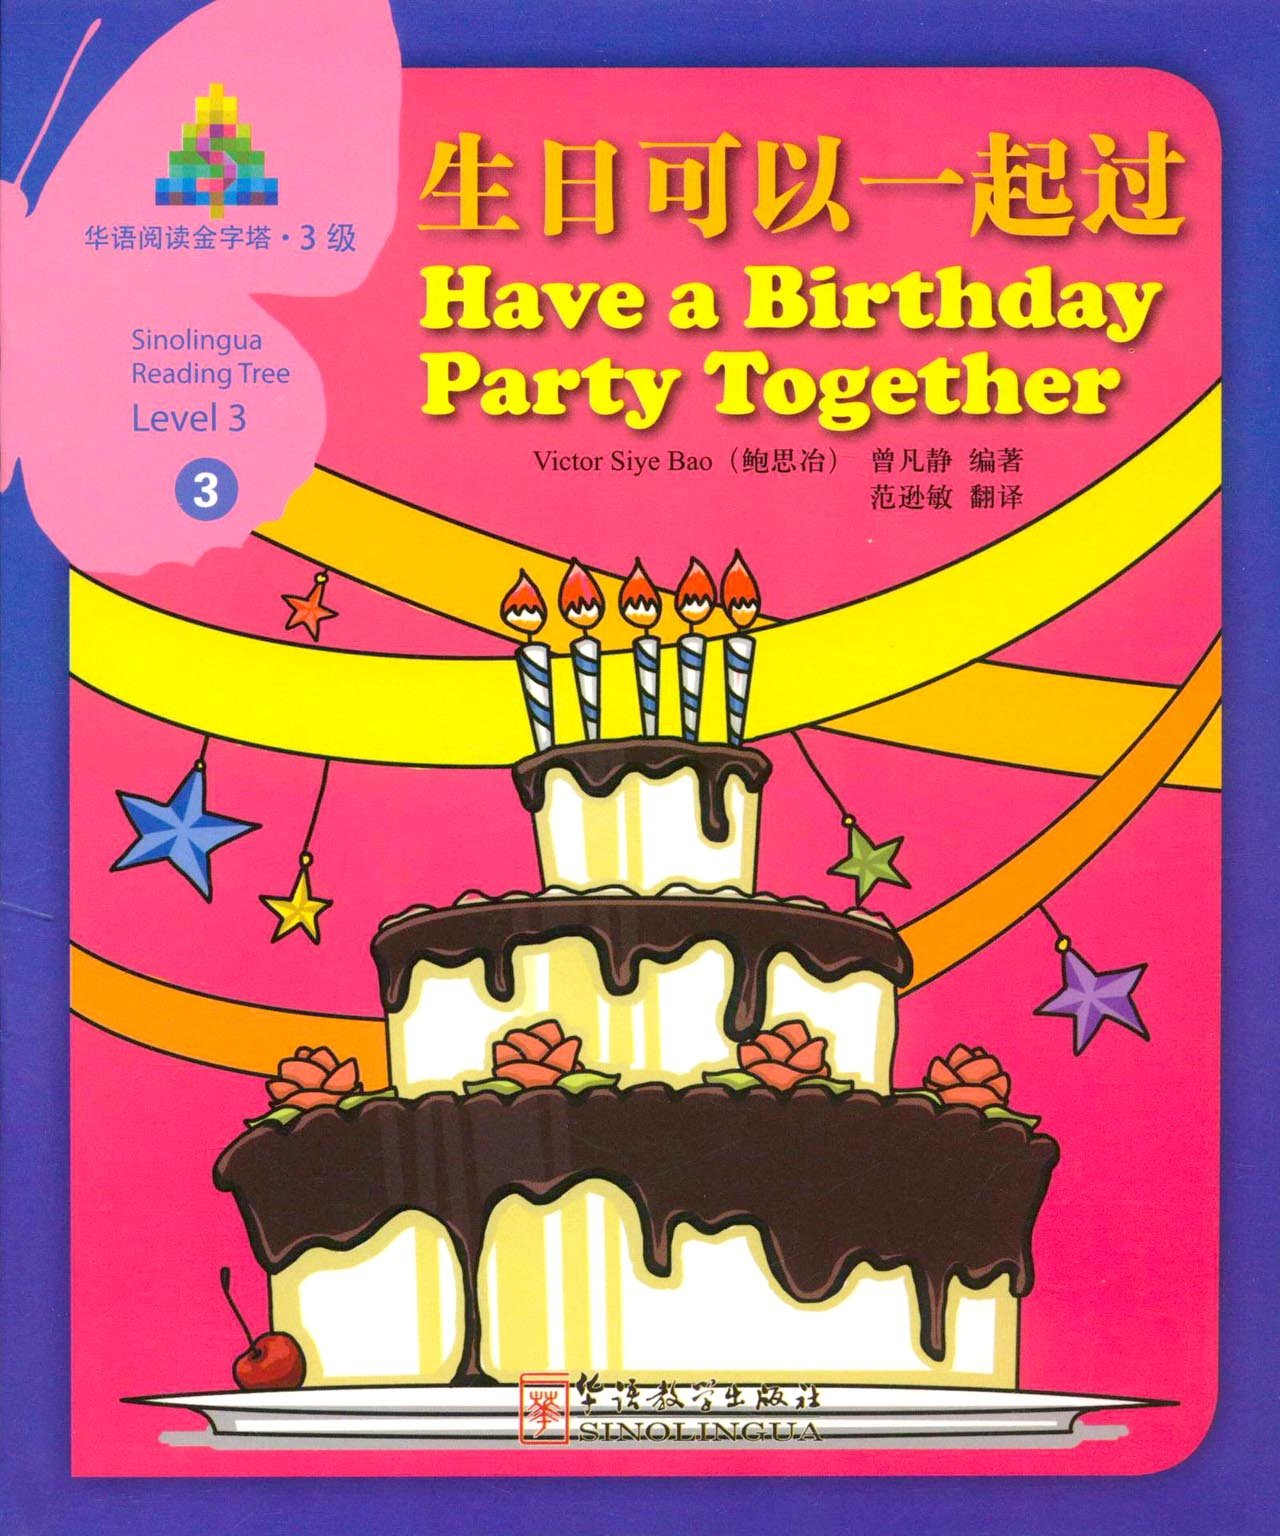 Have a Birthday Party Together - Sinolingua Reading Tree Level 3